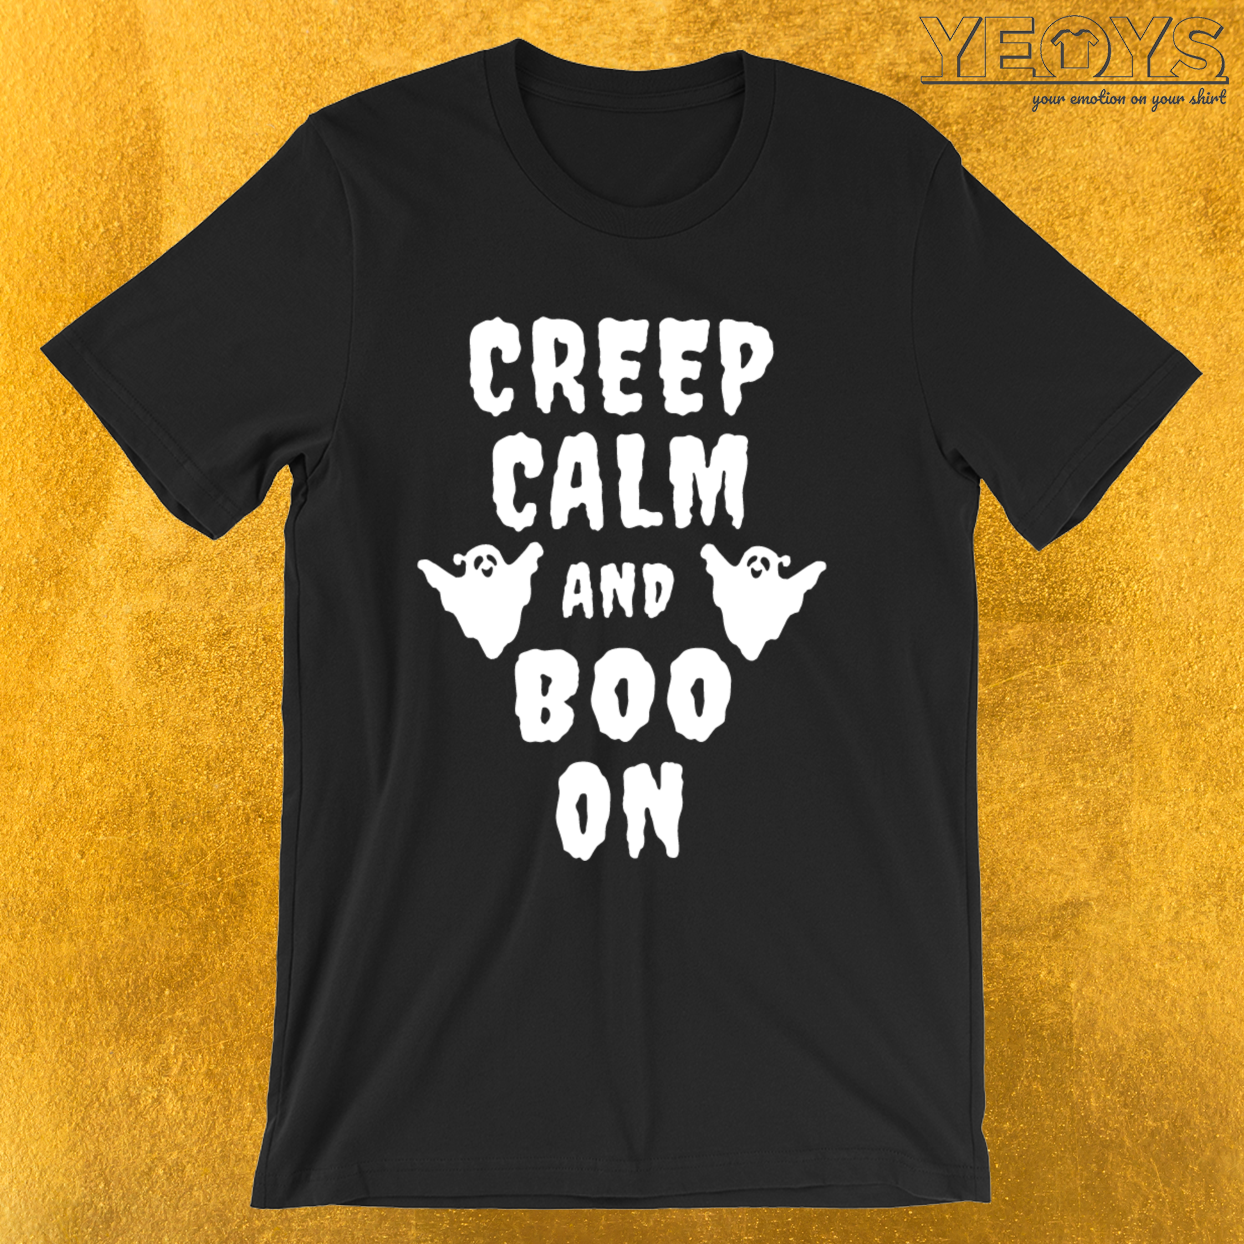 Creep Calm and Boo On – Cute Boo Tee